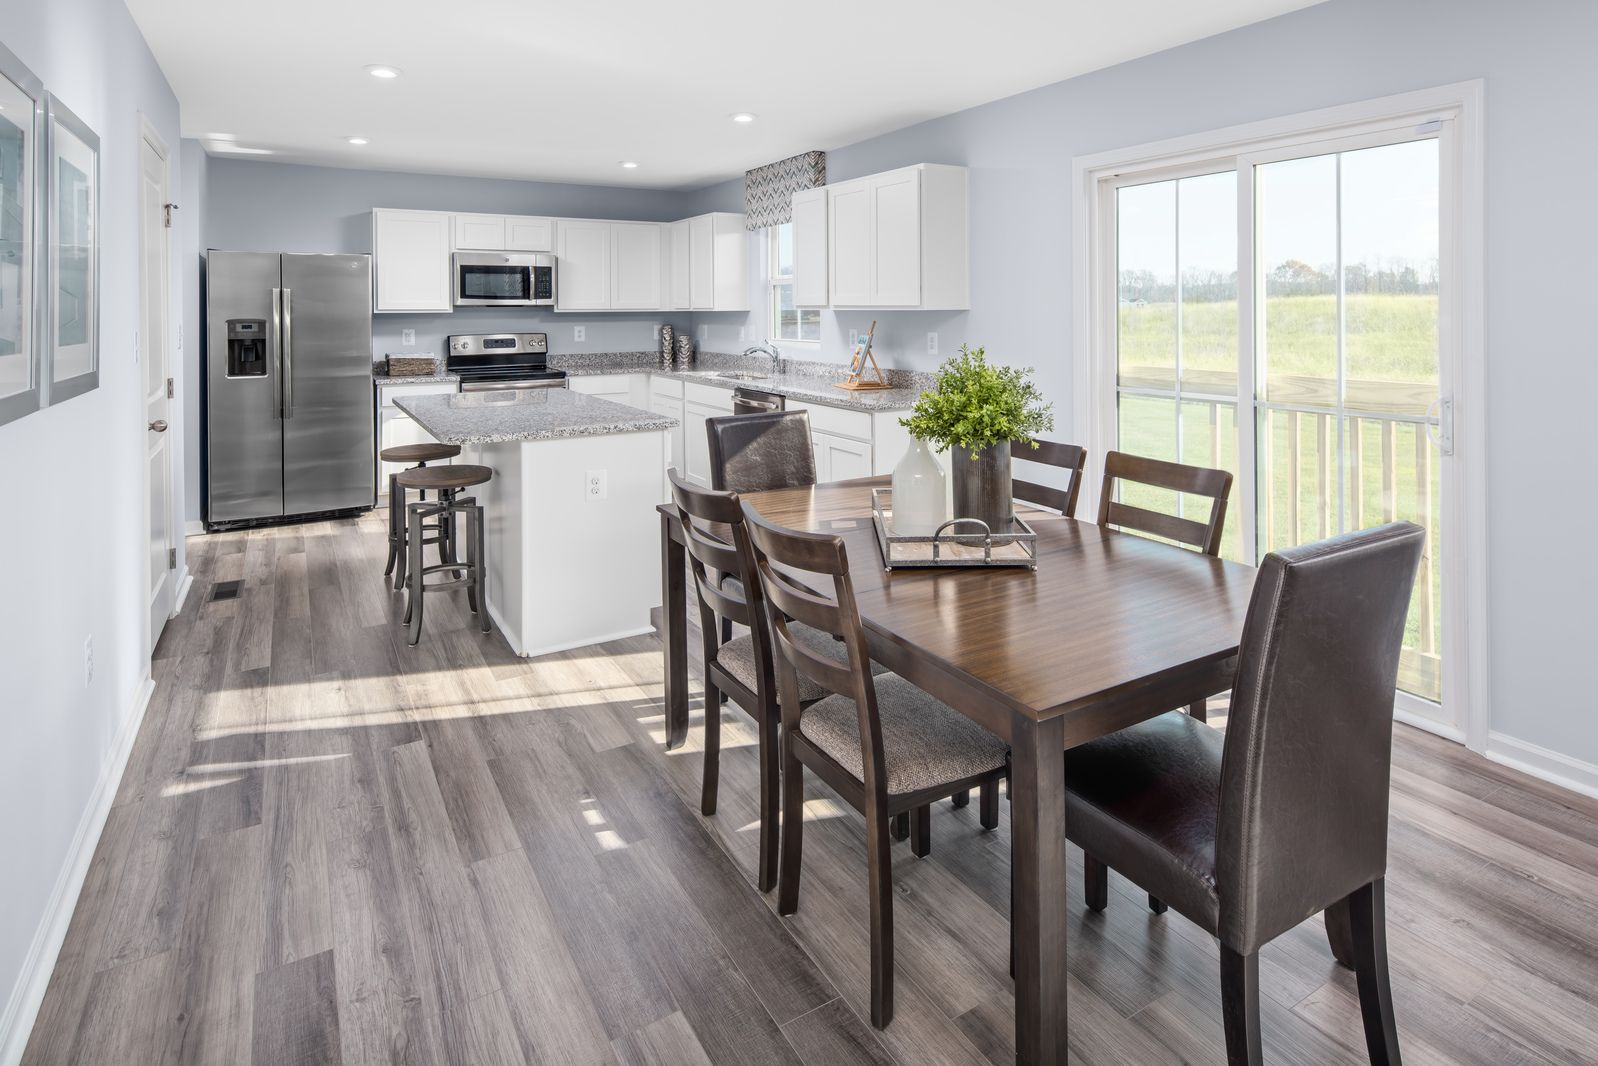 Kitchen featured in the Elm By Ryan Homes in Akron, OH